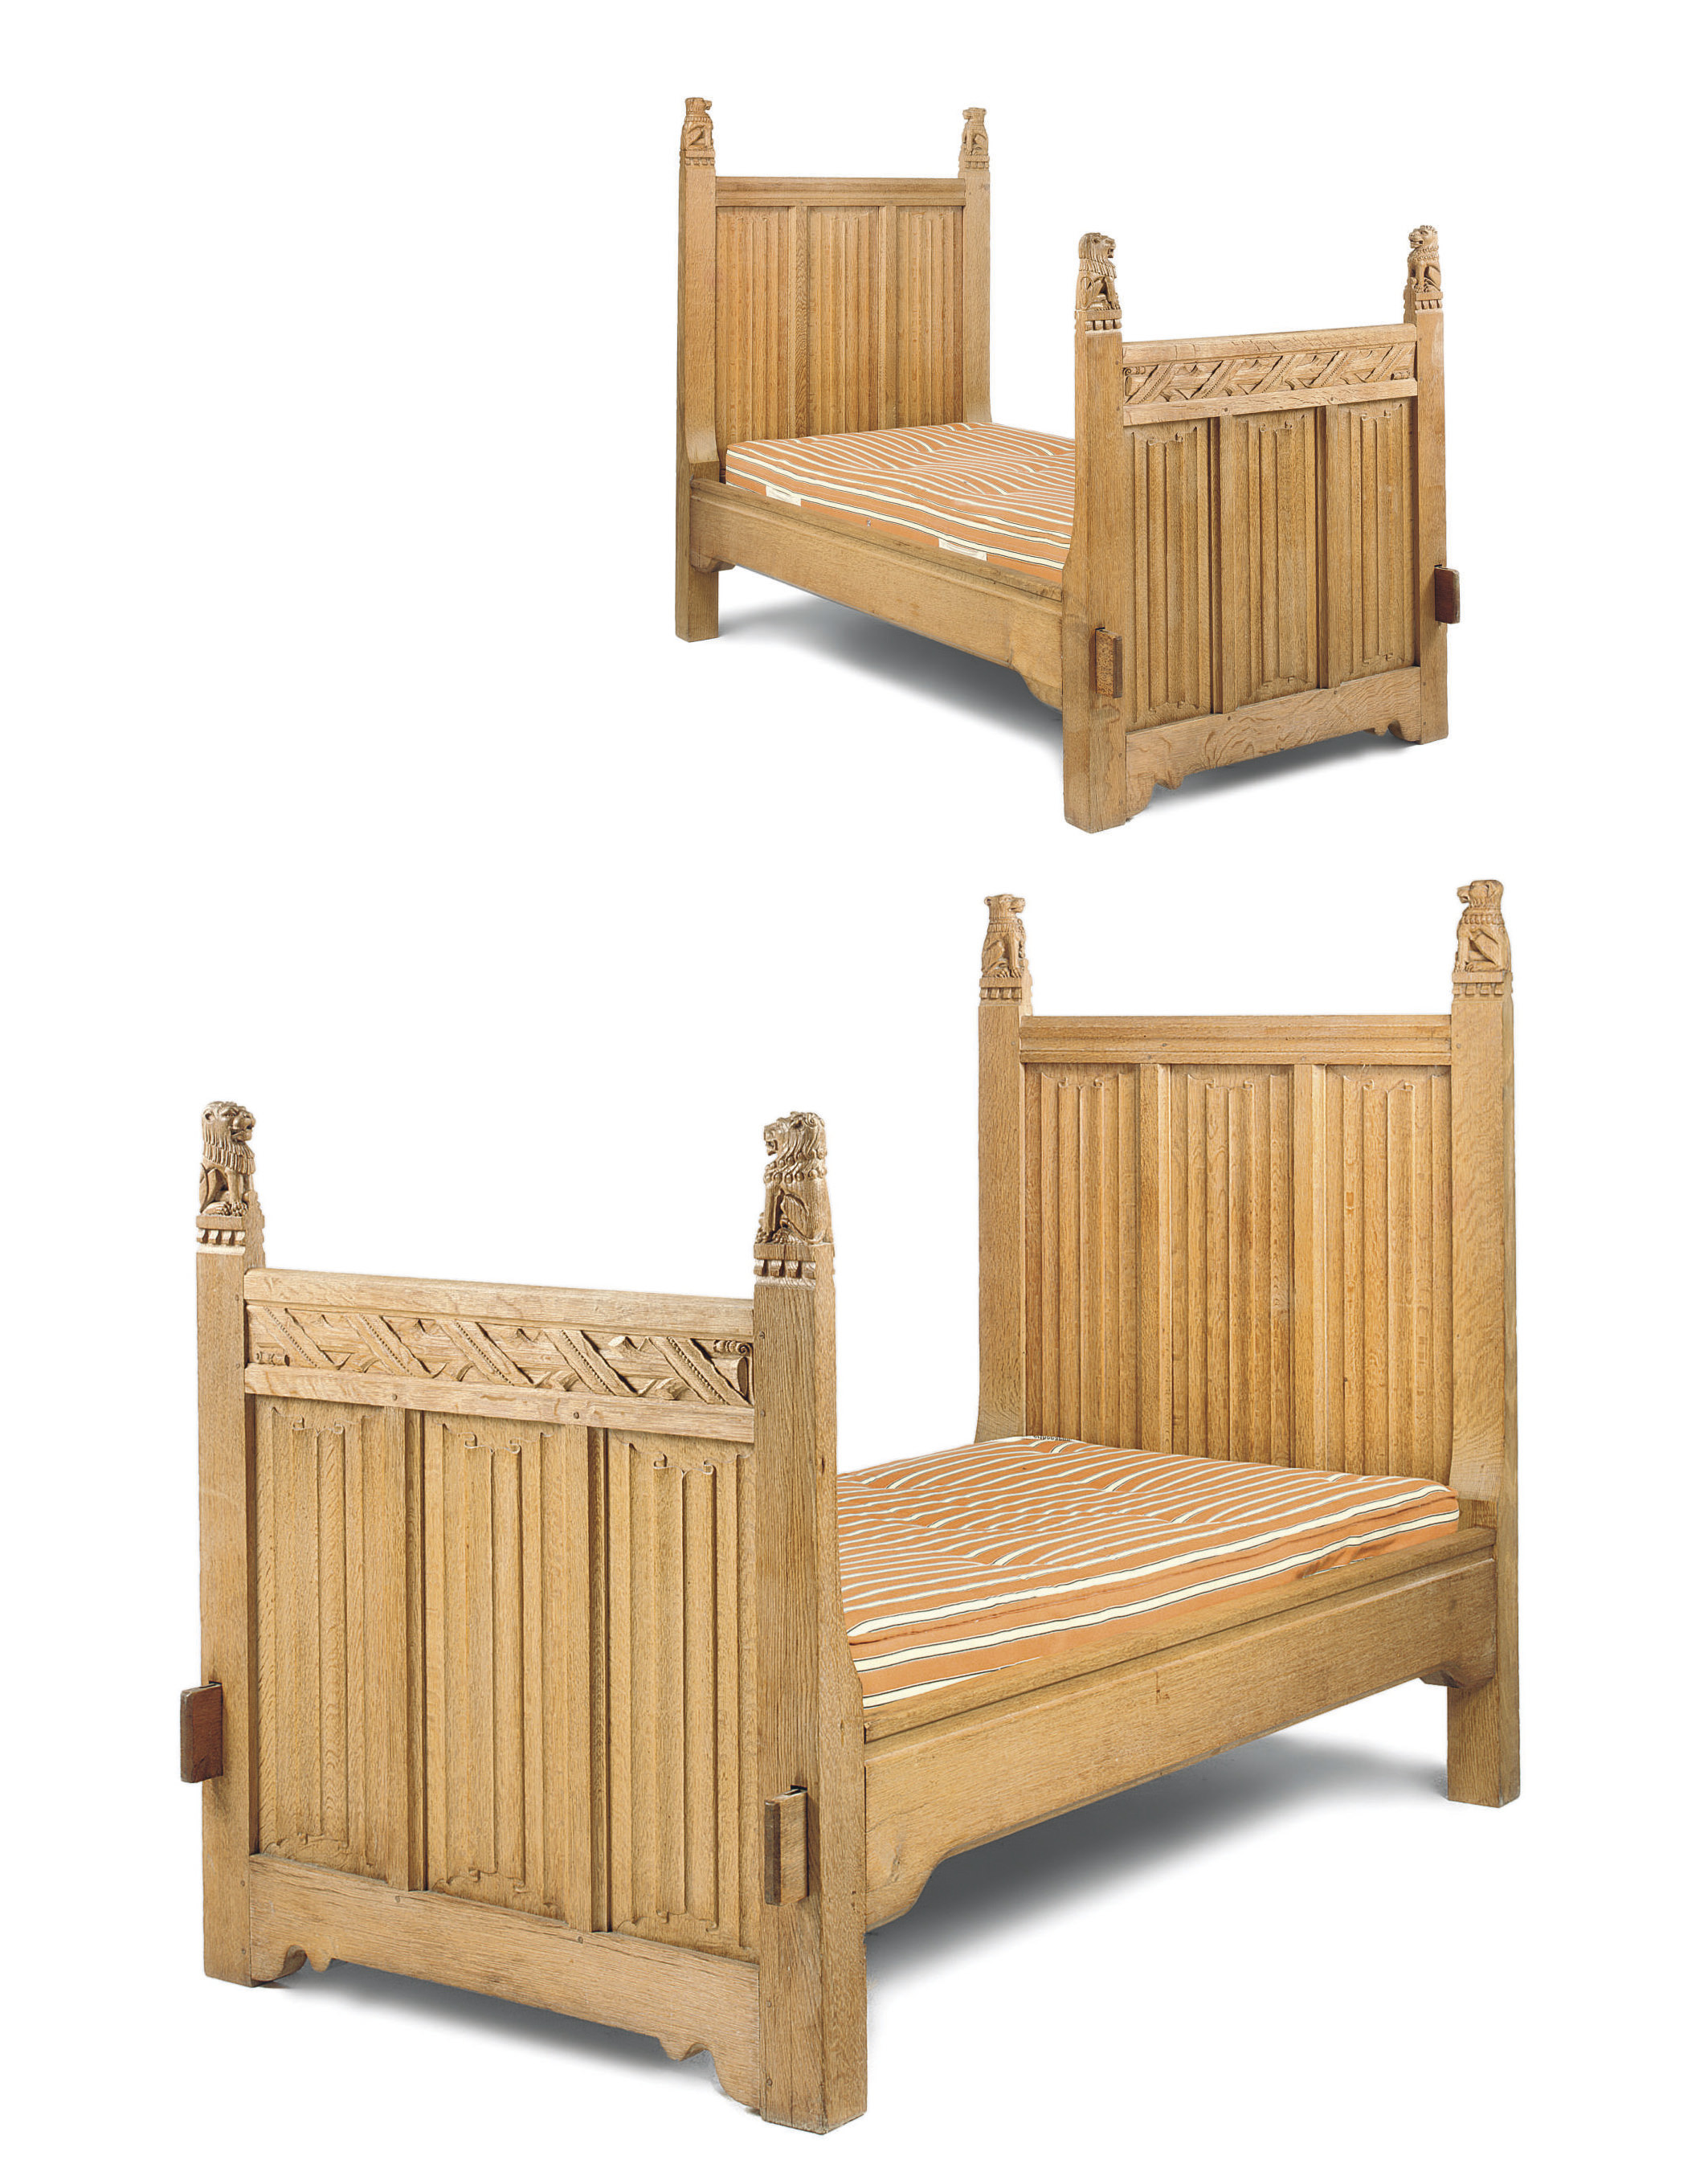 A PAIR OF SCOTTISH OAK SINGLE BEDS